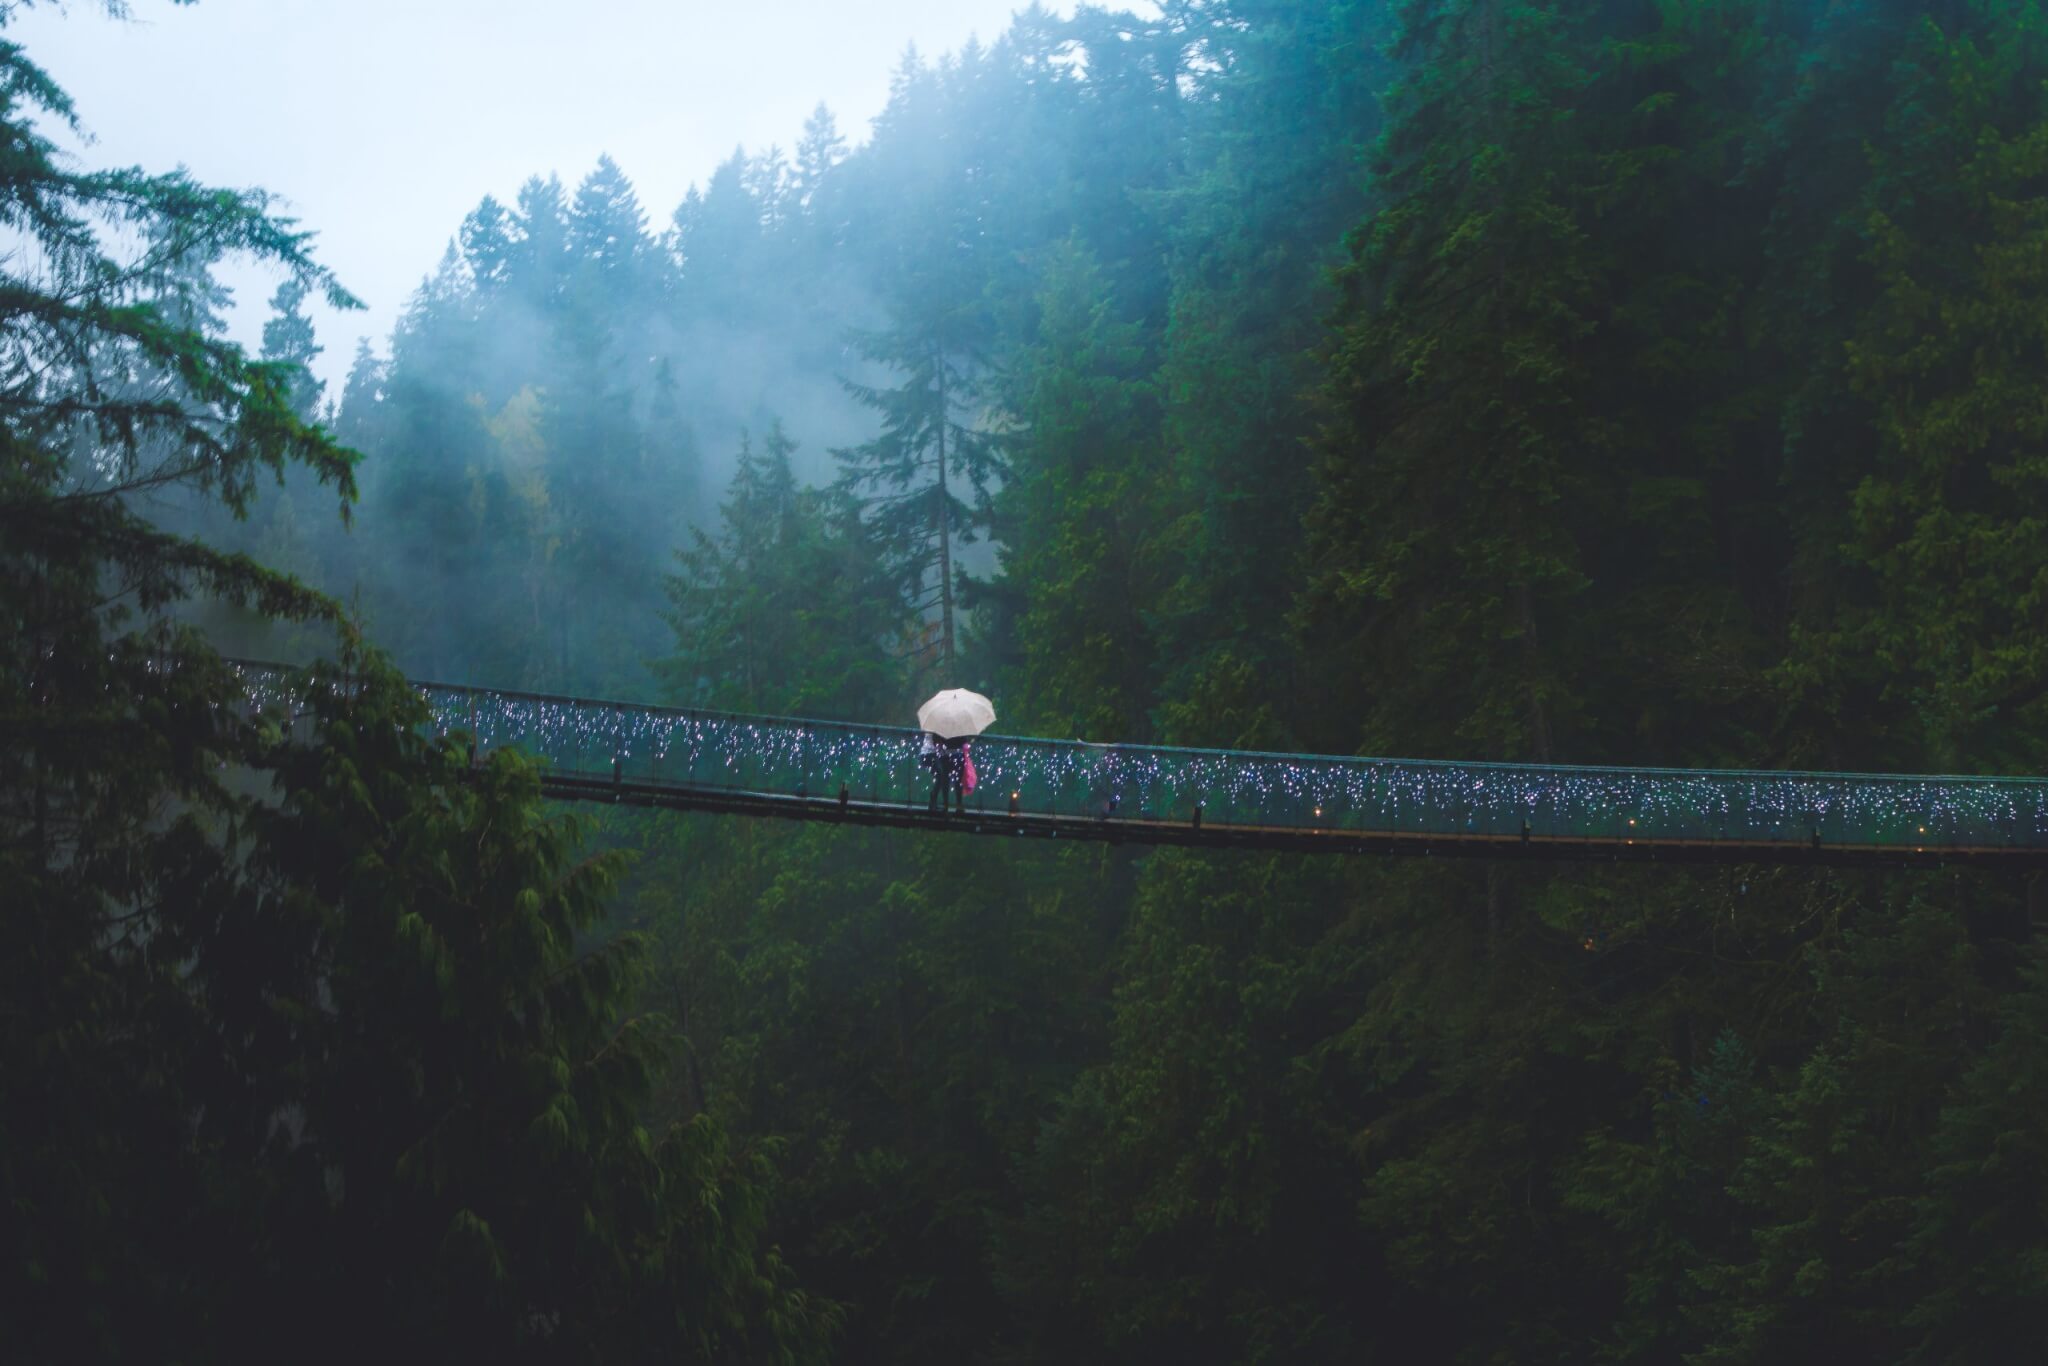 Canyon Lights - Capilano Suspension Bridges, Vancouver